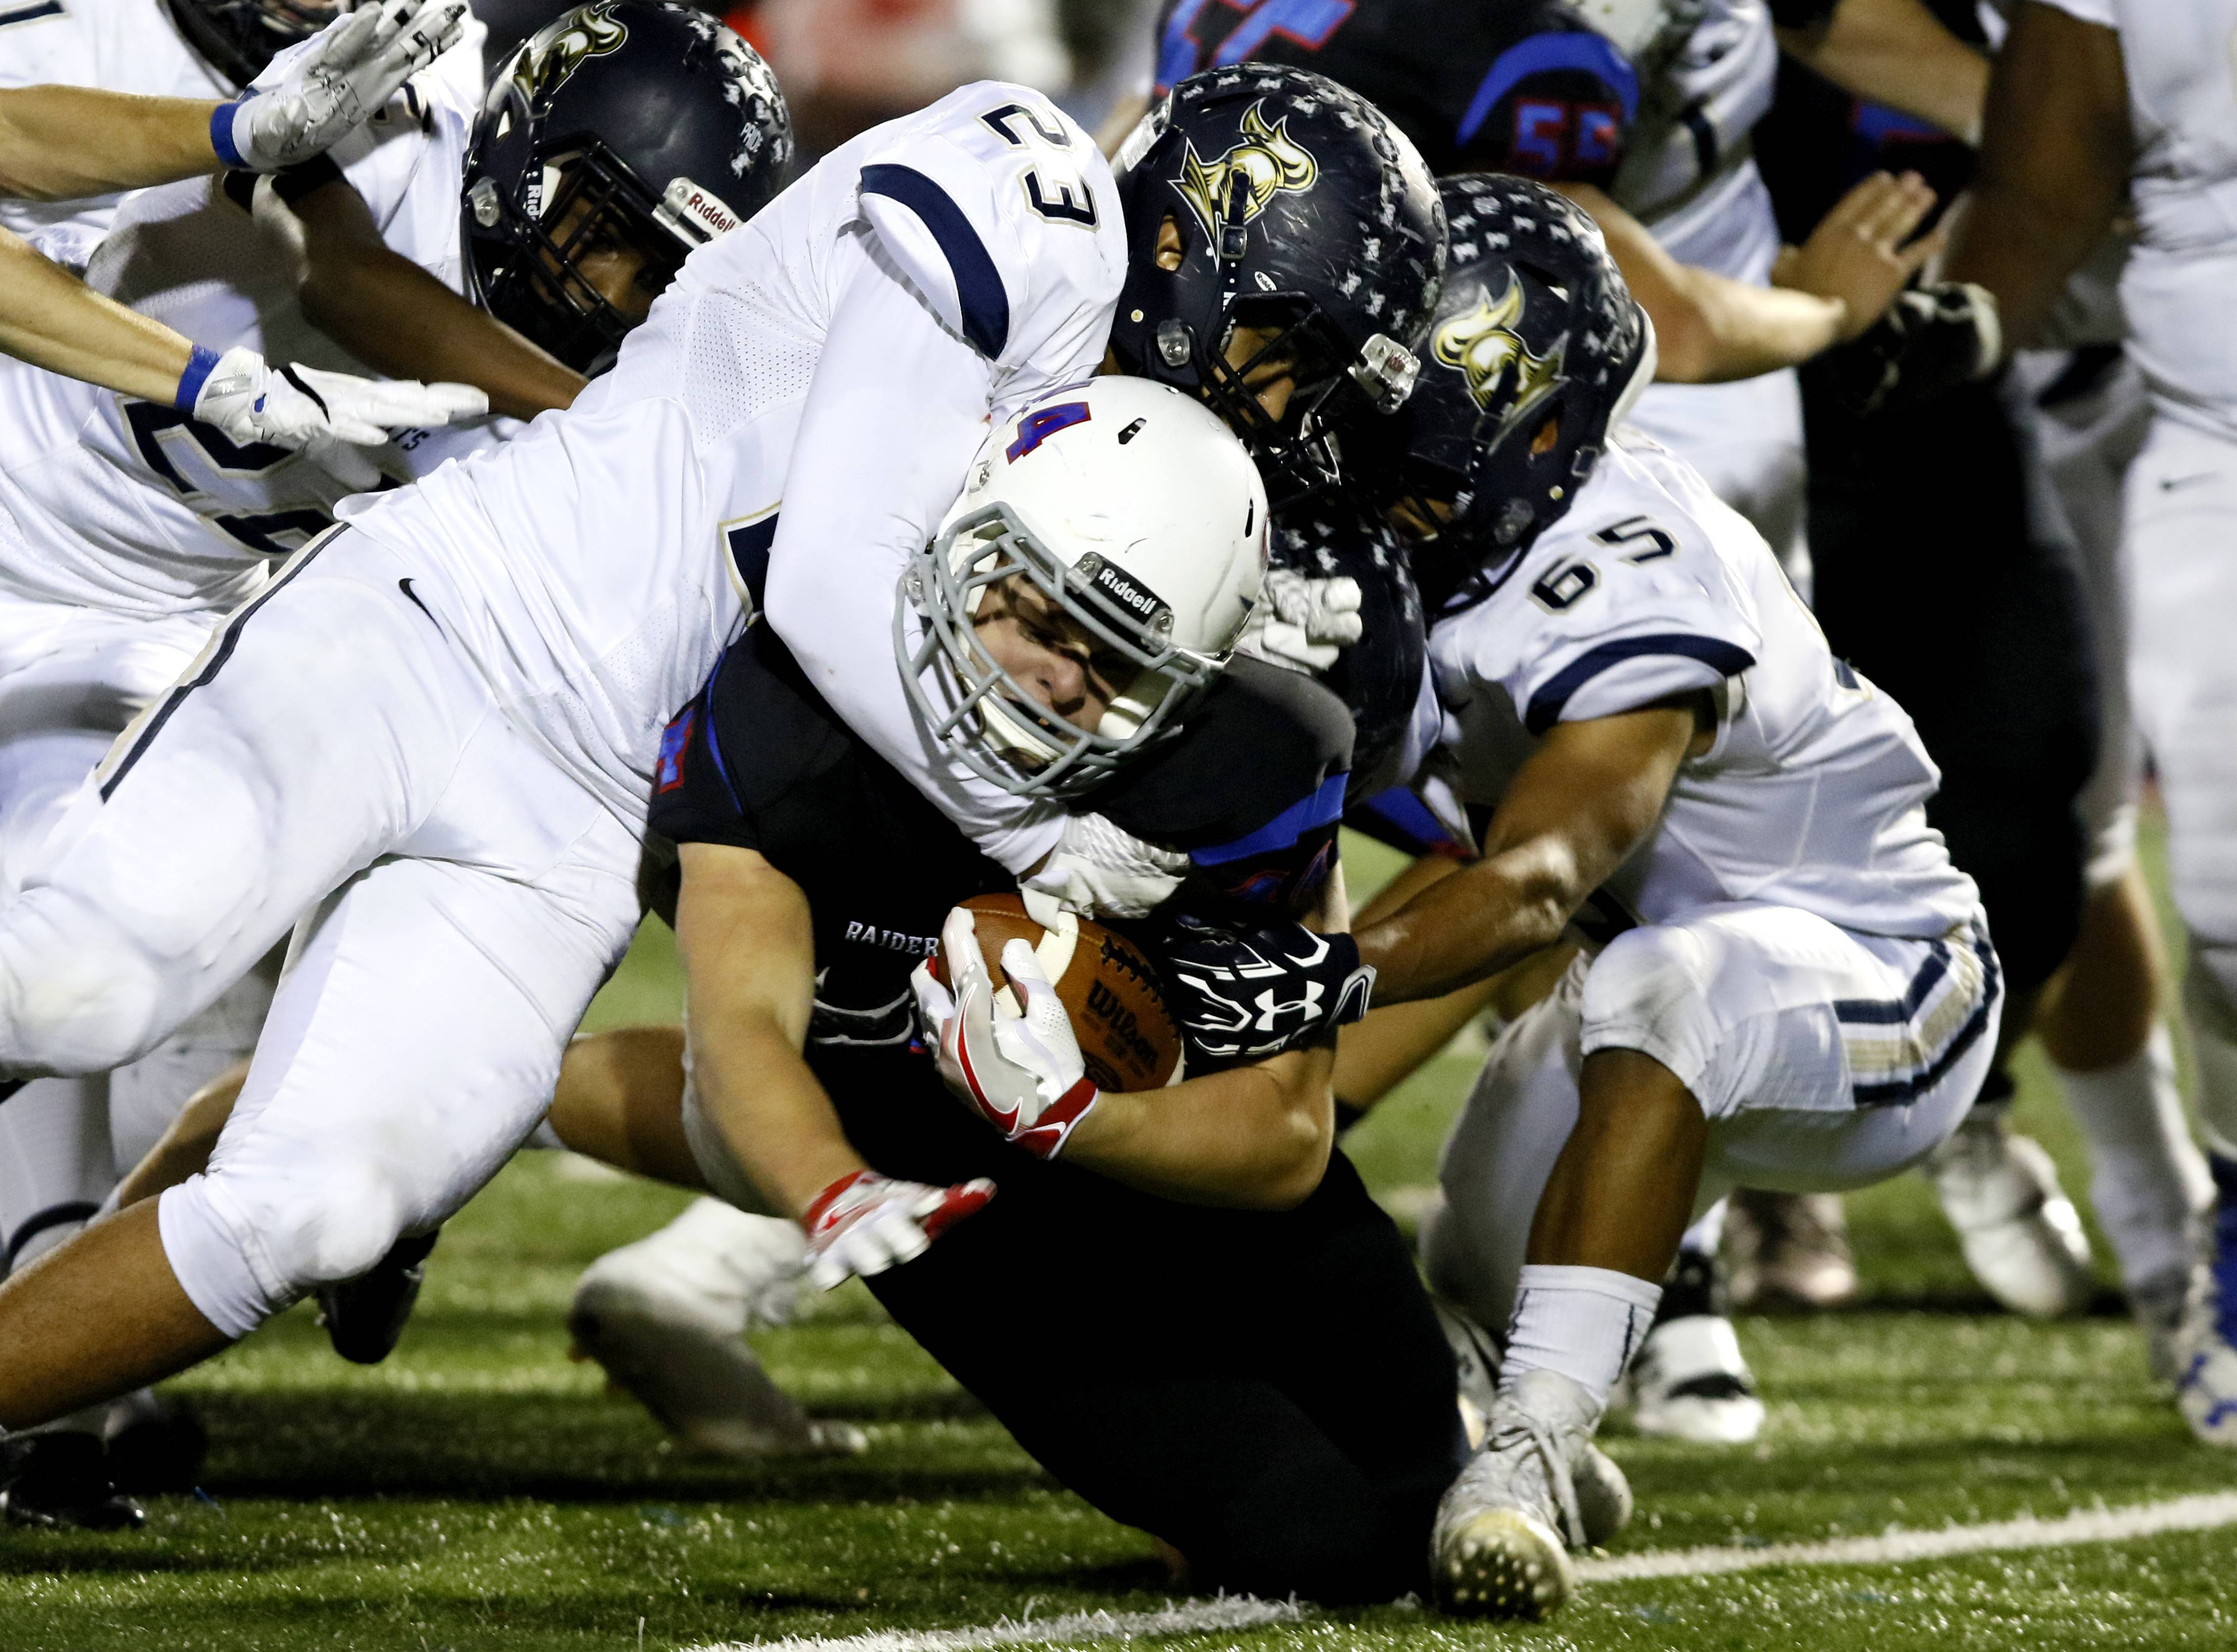 Glenbard South can't derail ICCP's special season